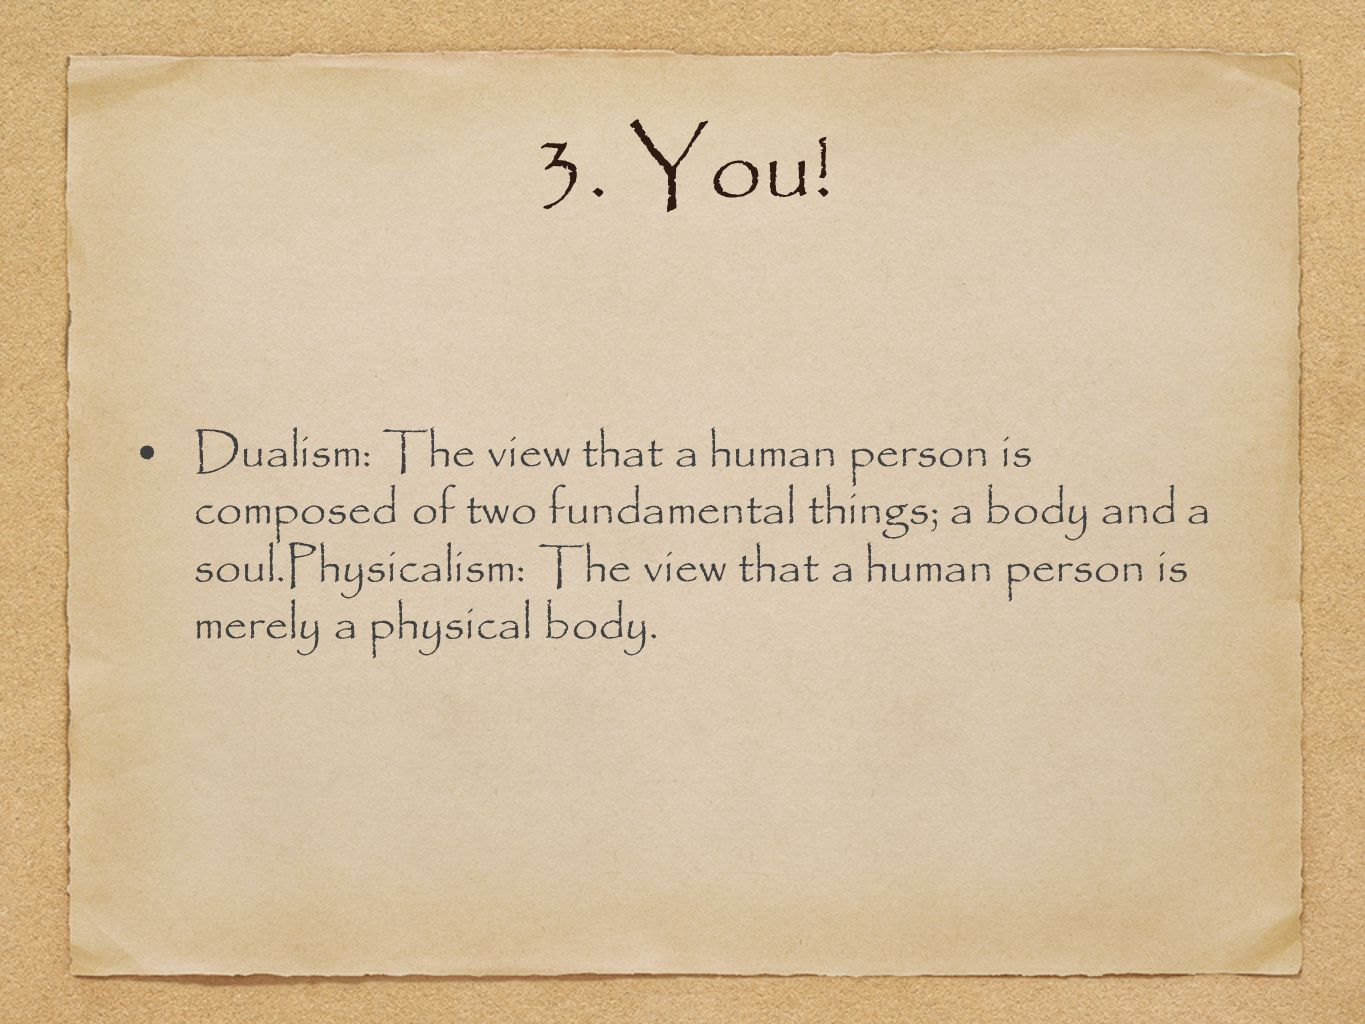 3. You.